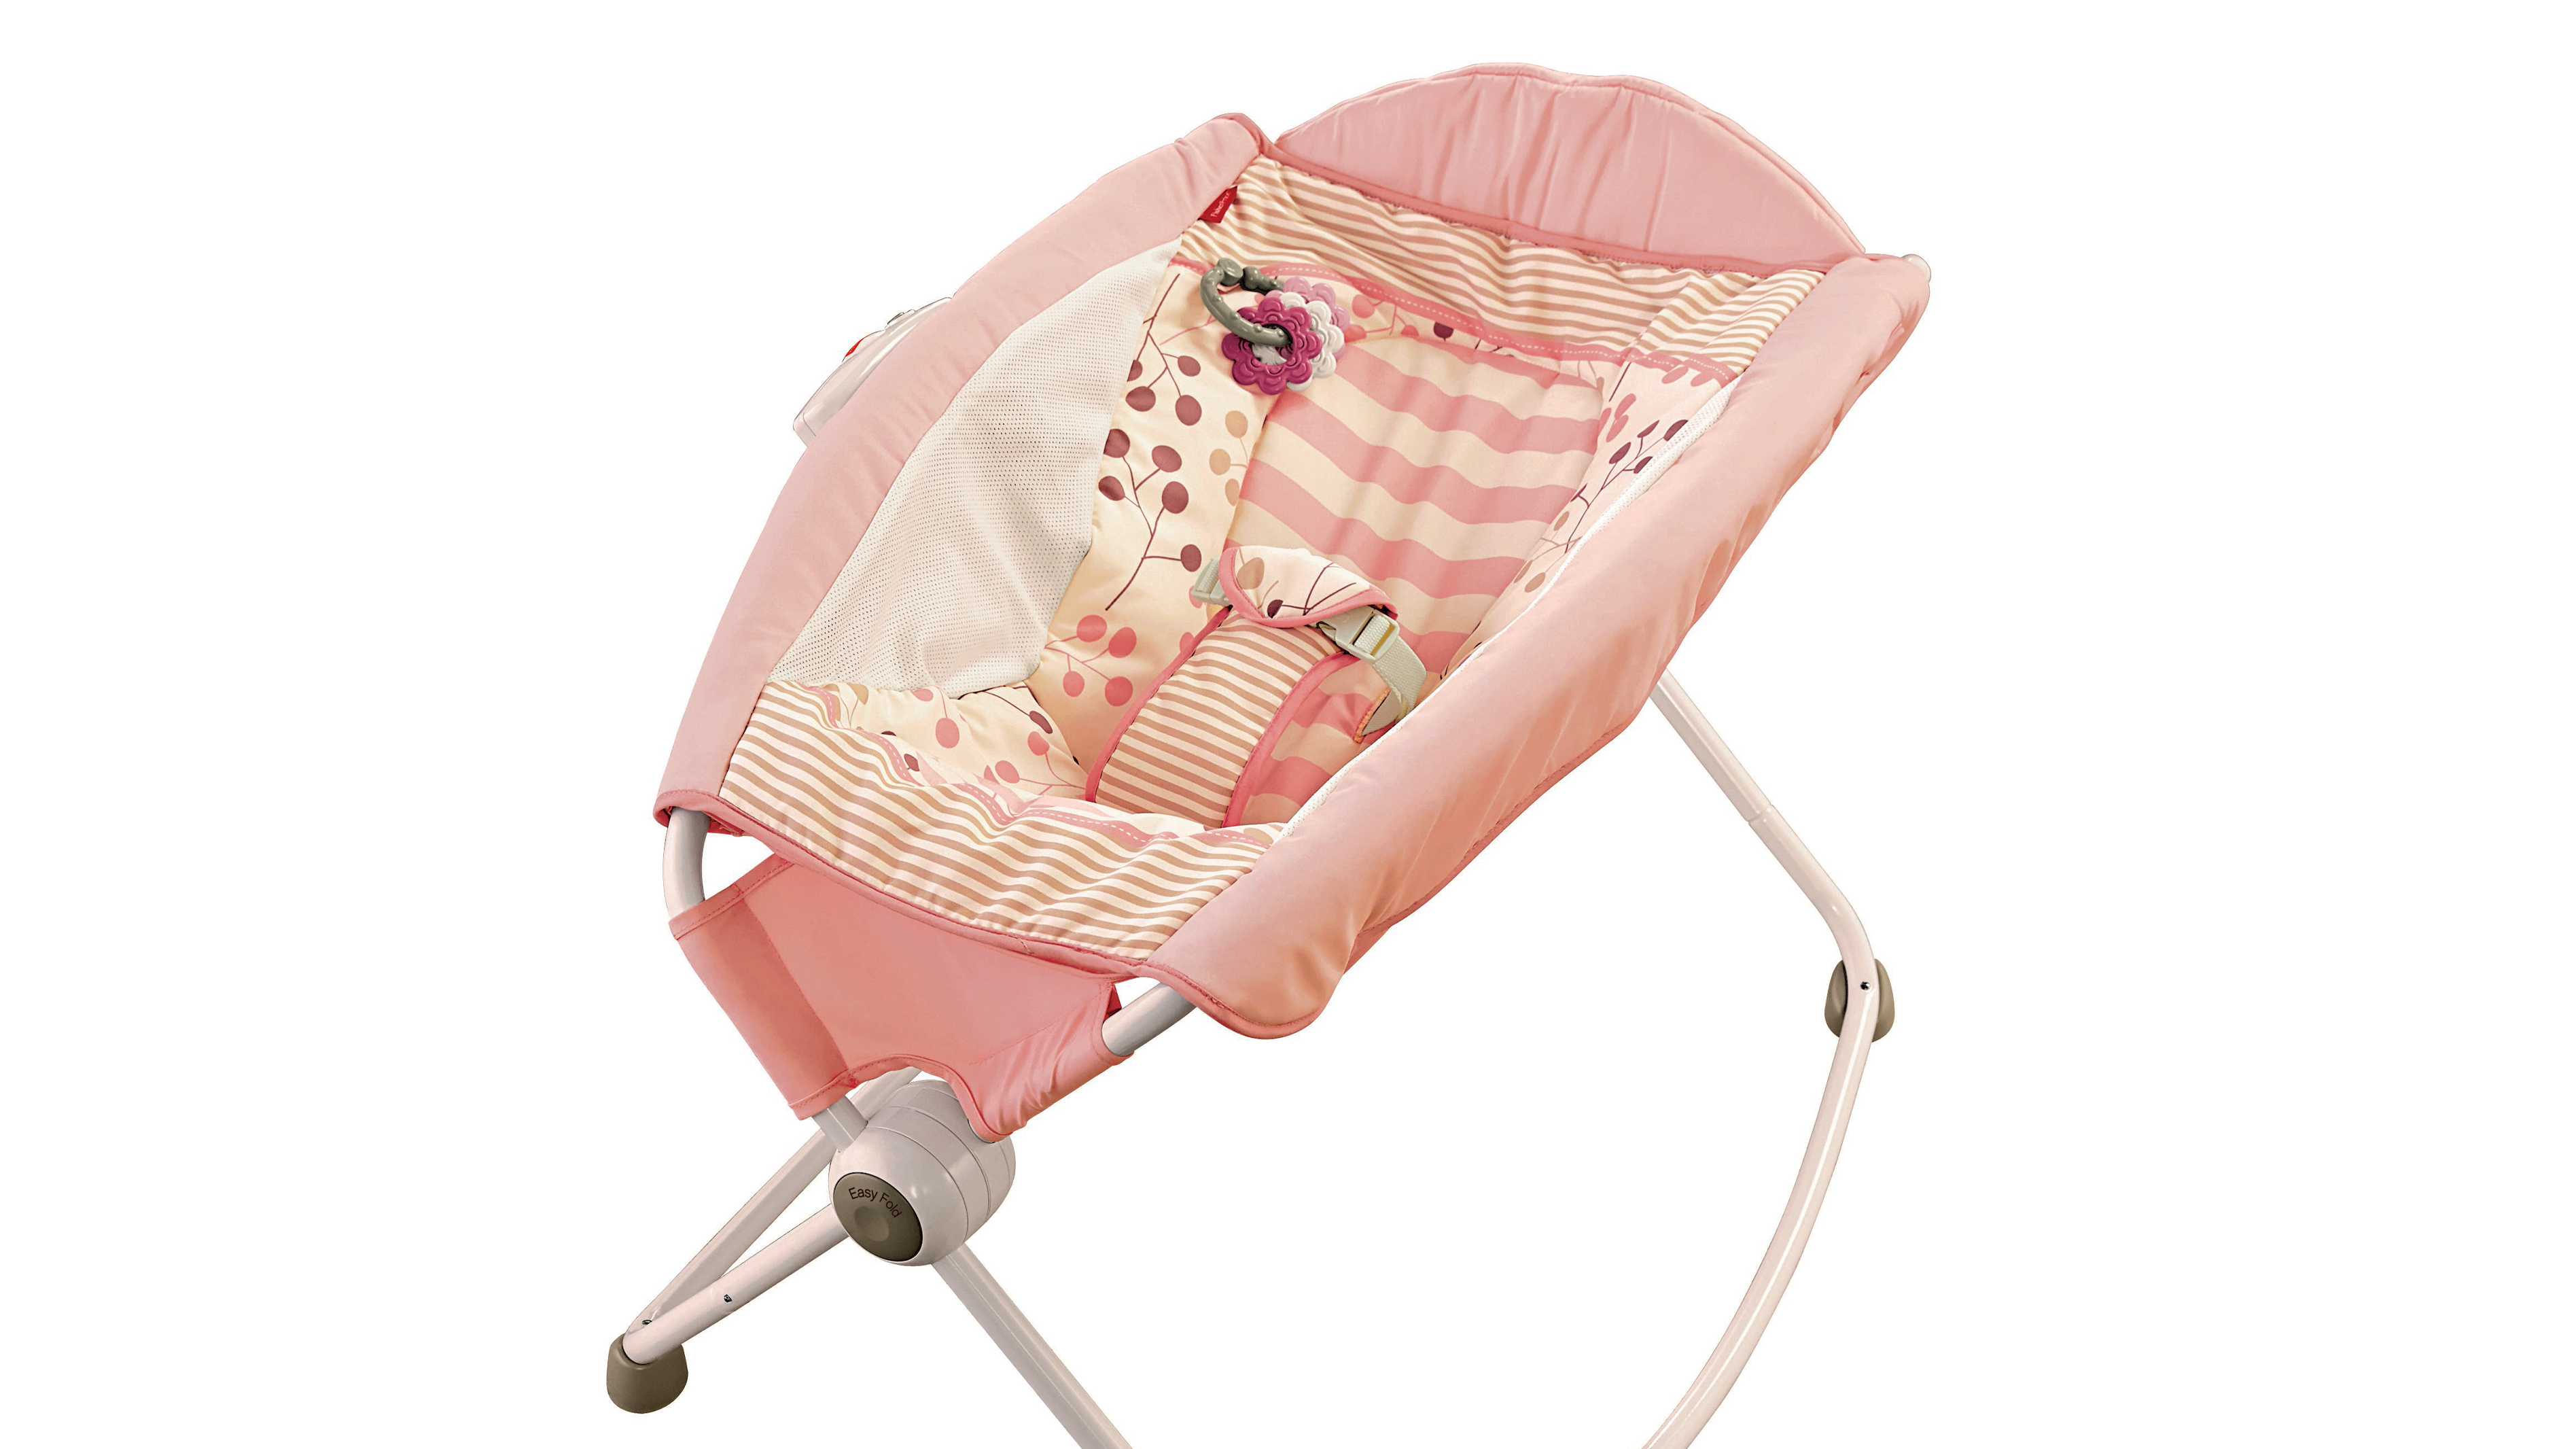 Infant Rocker Carrier Fisher Price Recalls Rock N Play Baby Sleepers Shots